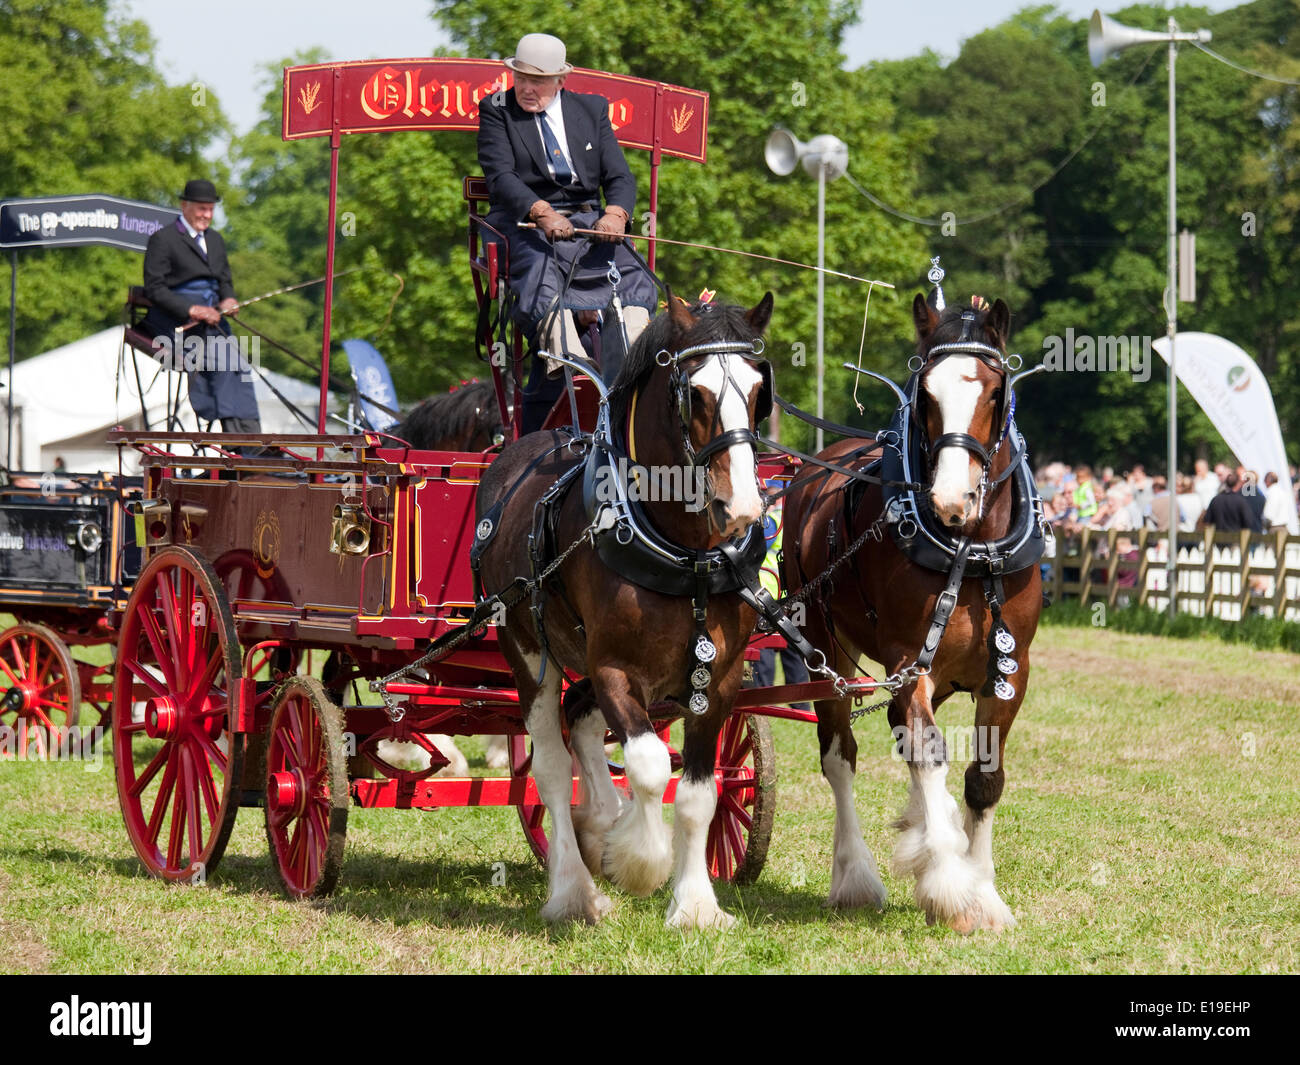 Stocksfield, England - May 26, 2014: Entrants in the pairs section of the Heavy Horses Turnout displaying in the main arena at the Northumberland County Agricultural Show at Bywell Hall, near Stocksfield, in North east England. Agriculture is an important part of the economy in the region and such events shows draw large numbers of visitors. - Stock Image